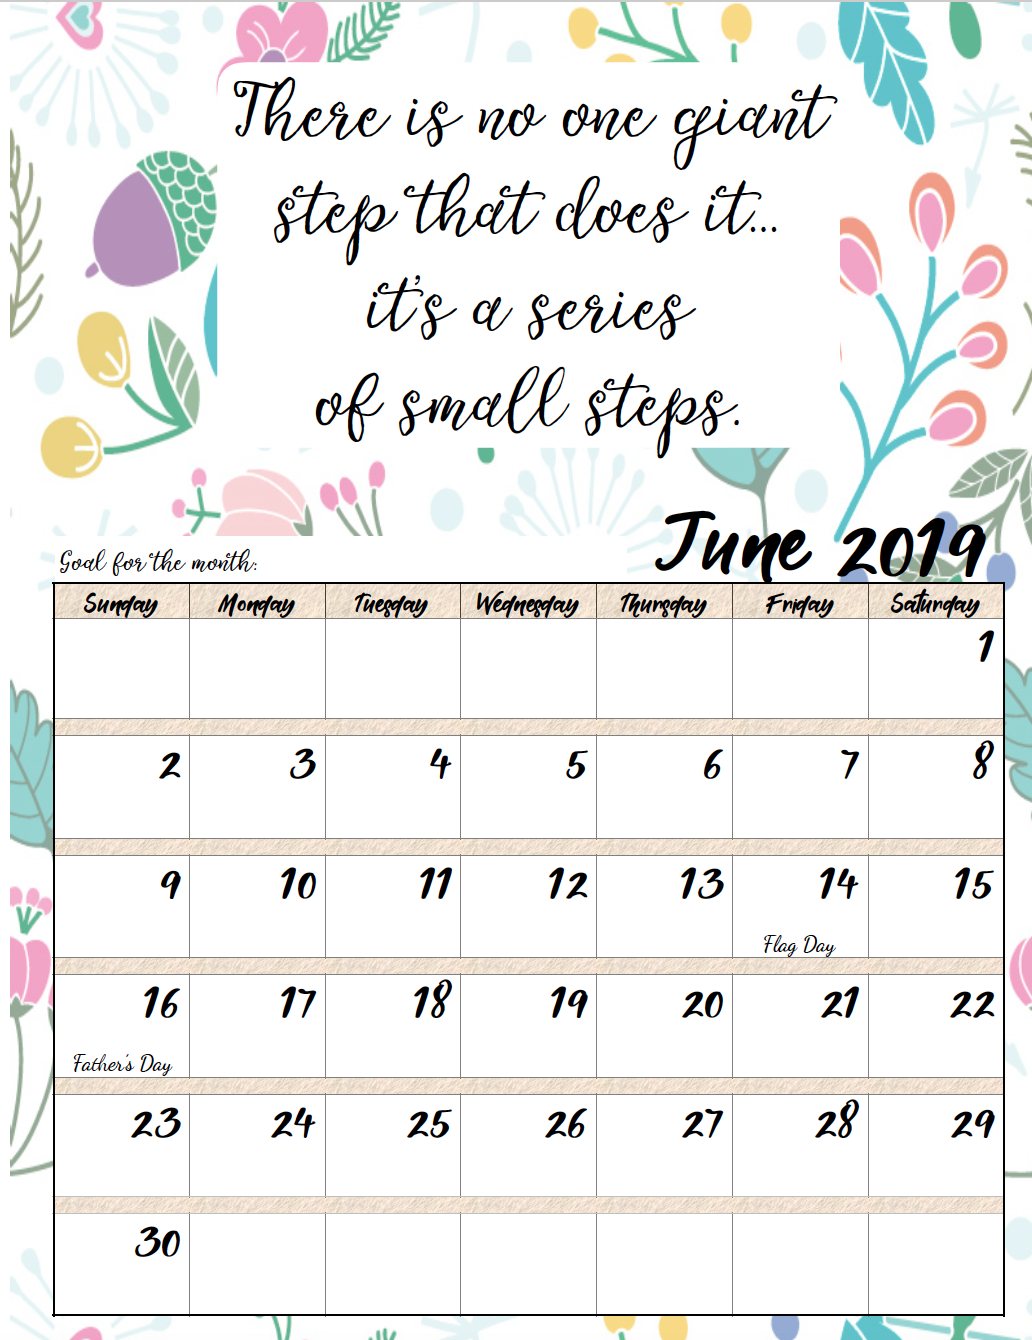 June. FREE Printable 2019 Monthly Motivational Calendars. Space for setting goals, different motivational quote each month, holidays marked. #free #freeprintable #printable #calendar #motivation